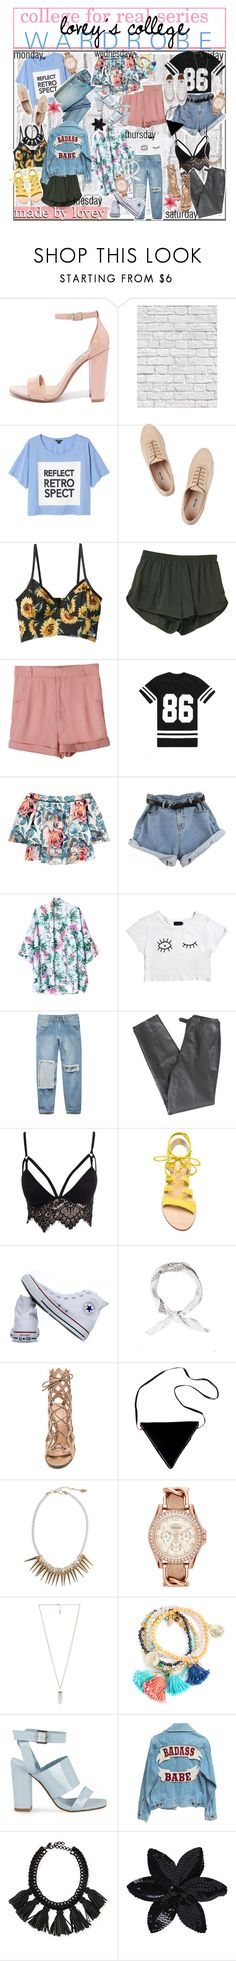 """Lovey's College Wardrobe"" by aloha-tip-girls ❤ liked on Polyvore featuring Steve Madden, Milton & King, Monki, Miu Miu, Elizabeth and James, Afends, Forever 21, Lafayette 148 New York, Club L and Cornetti"